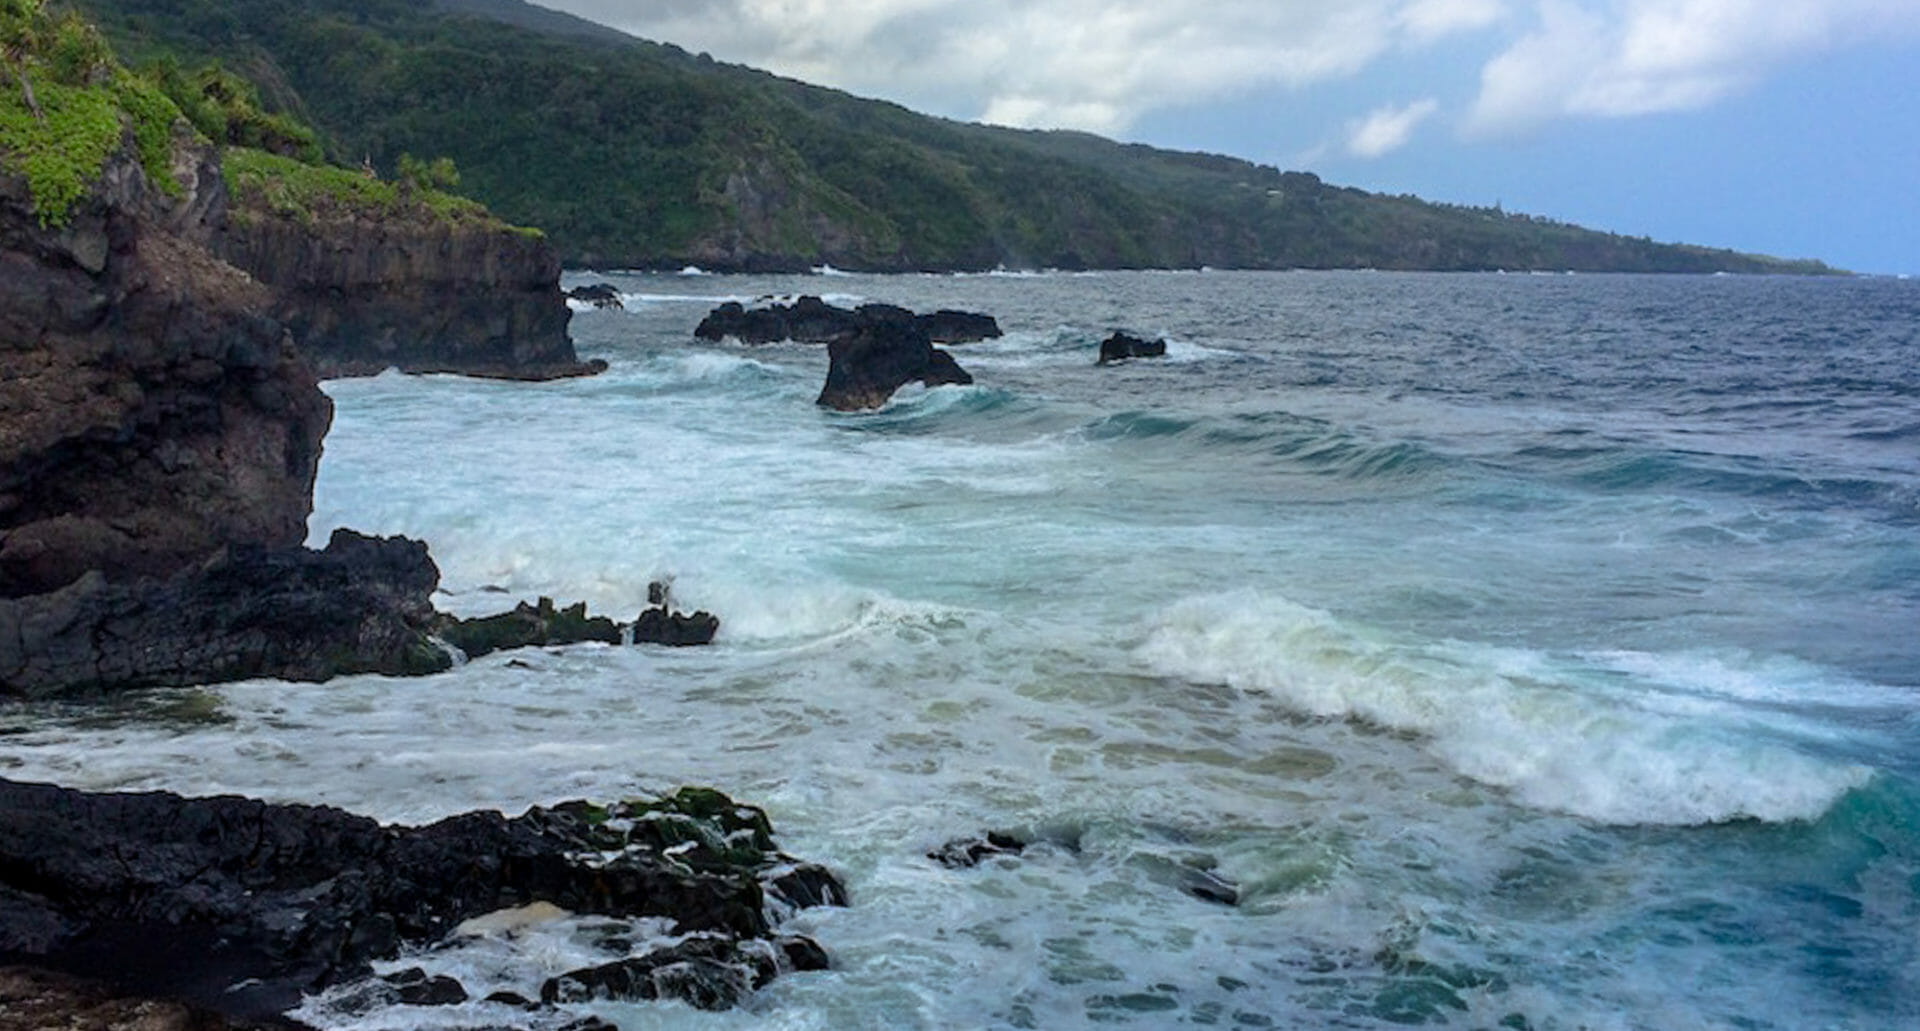 Oheo Gulch - Road to Hana - April 2015